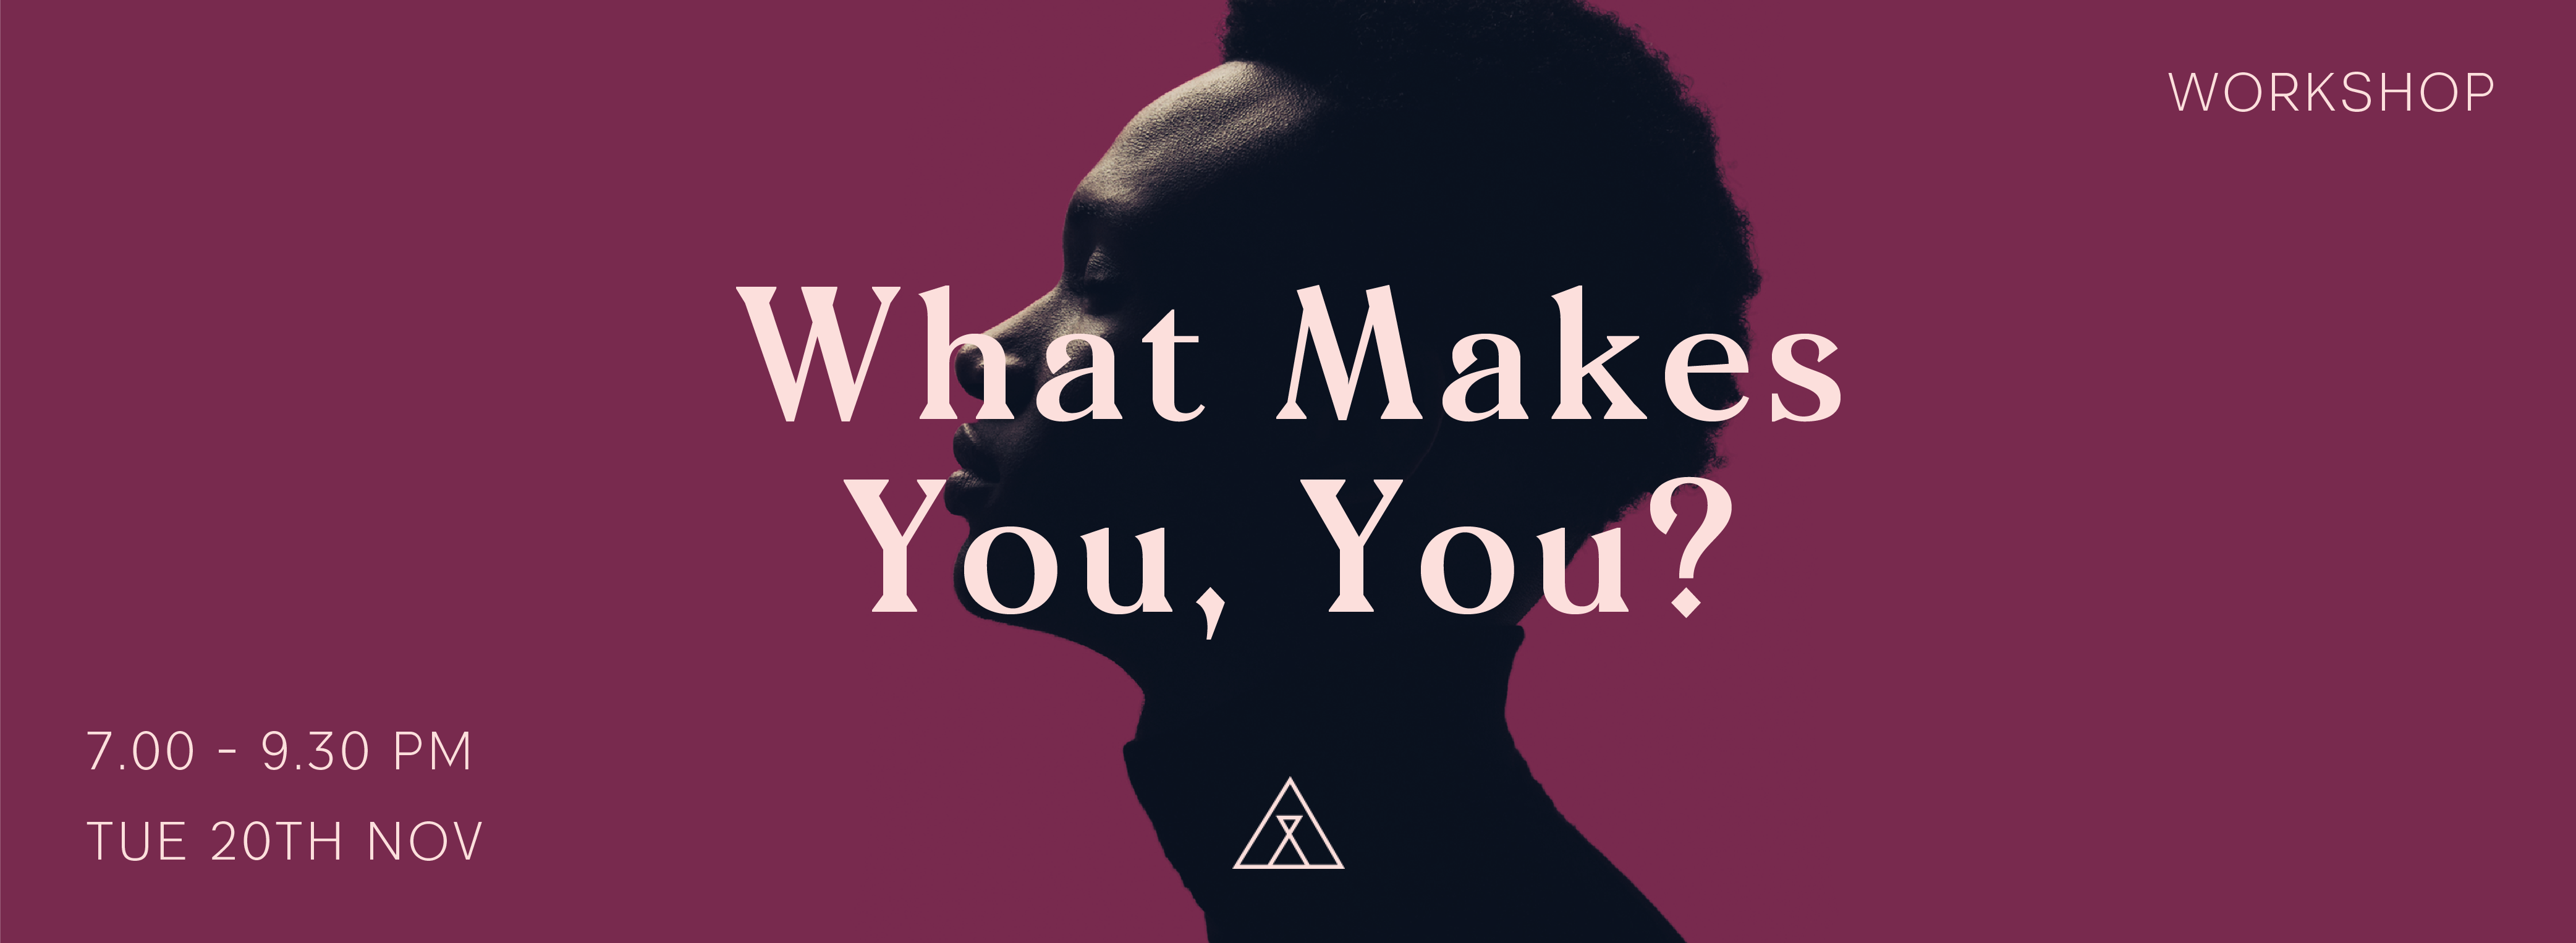 Whats Makes You, You?_Web Header